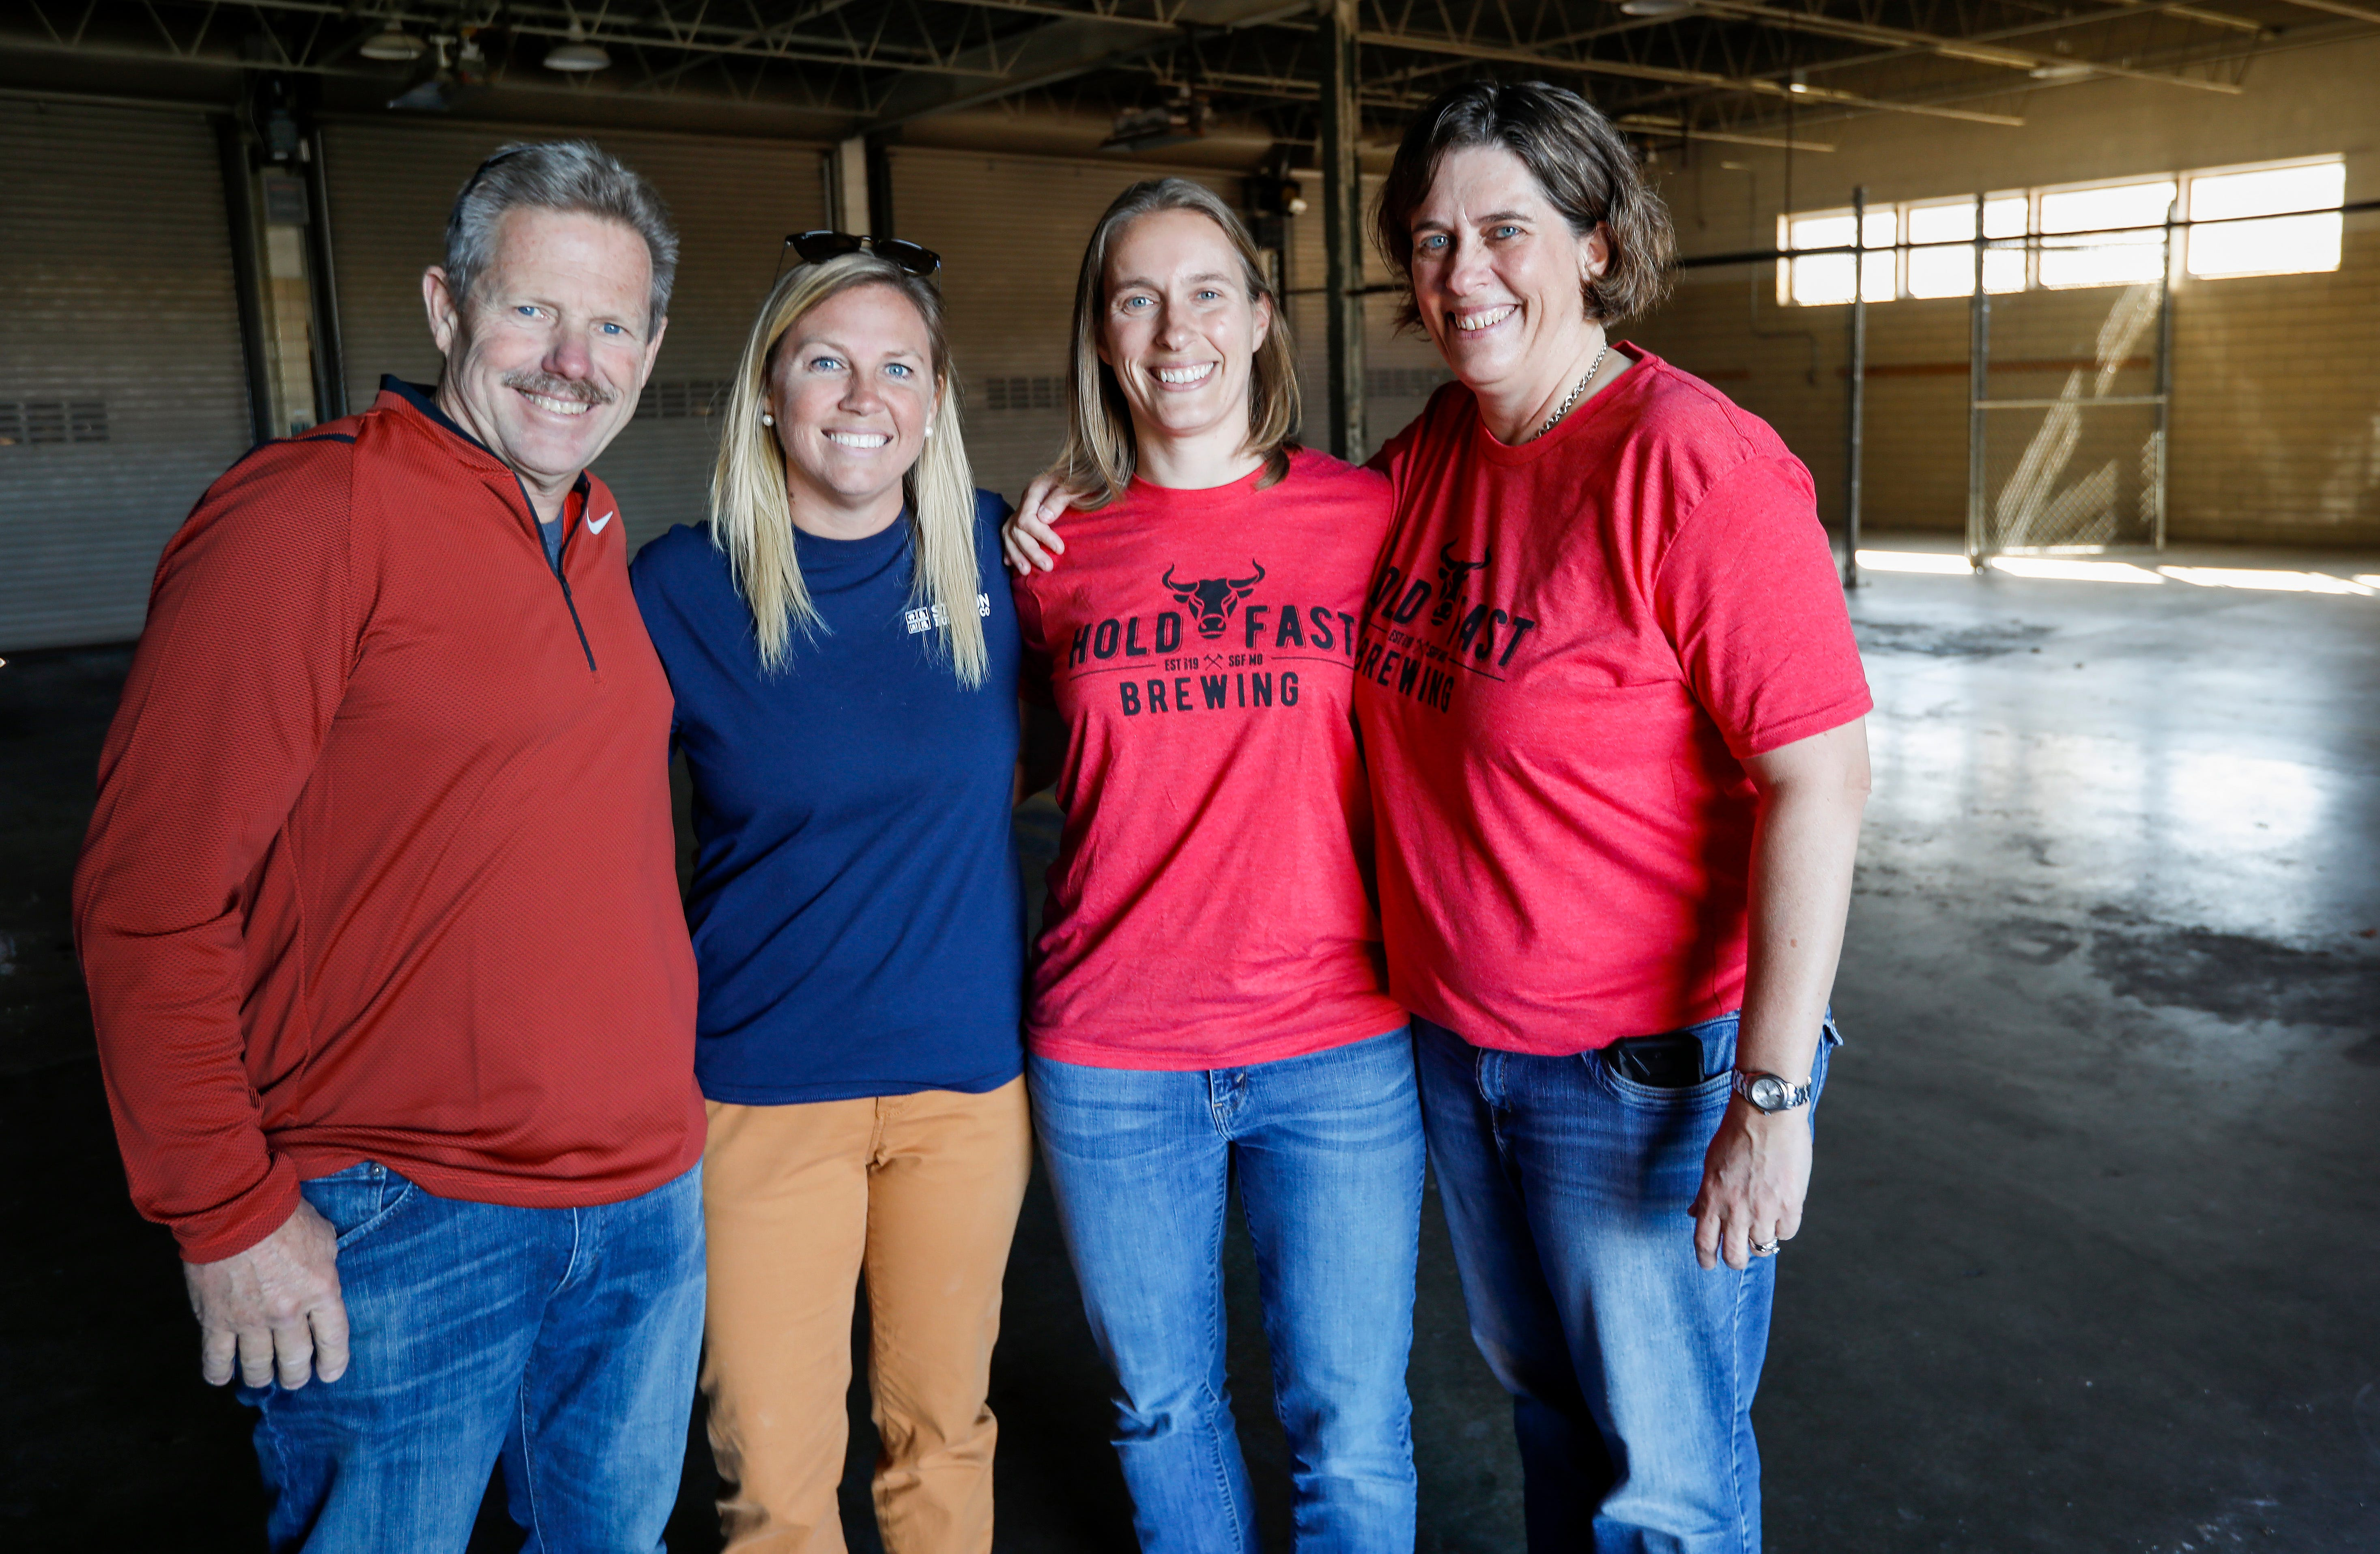 From left, Jack Stinson, Natalee Stinson, Susan McLeod and Carol McLeod stand inside the future home of Hold Fast Brewing on Wednesday, Oct. 17, 2018. The new brewery will be located at the intersection of Kimbrough Avenue and Trafficway Street inside an old firehouse and is expected to open in the summer of 2019.